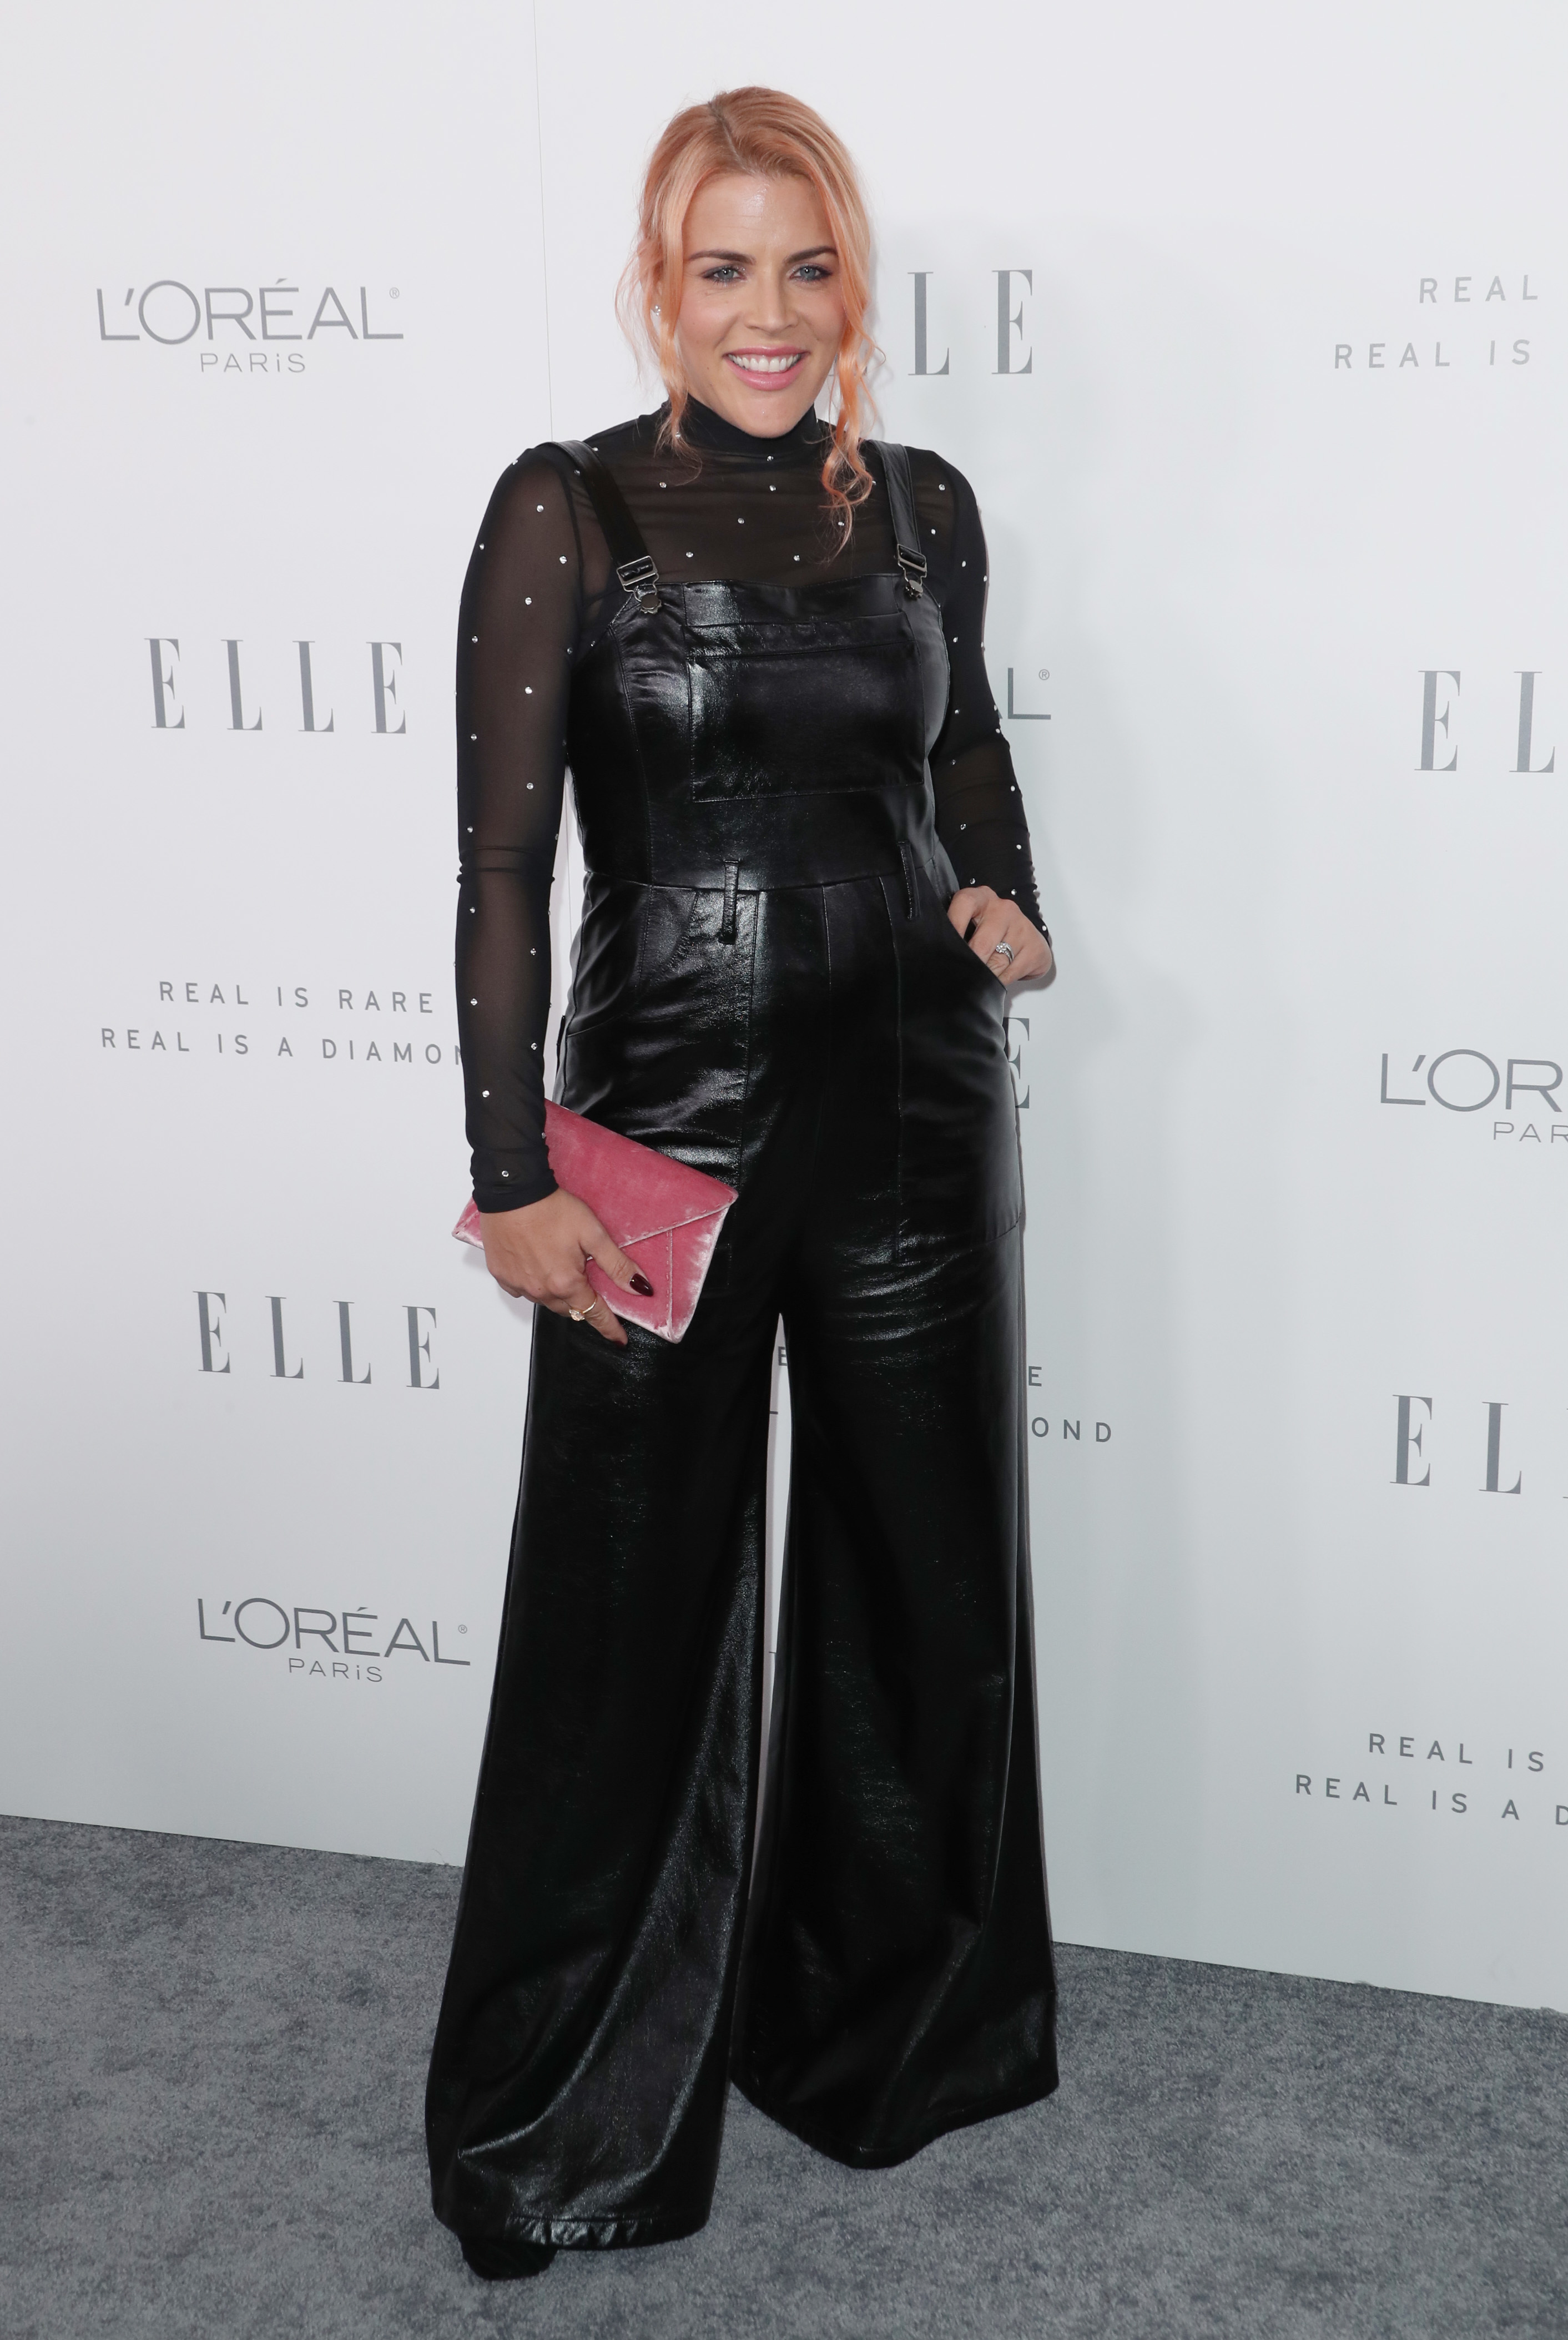 Busy Philipps attends the Elle Women In Hollywood in Los Angeles on Oct. 16, 2017.